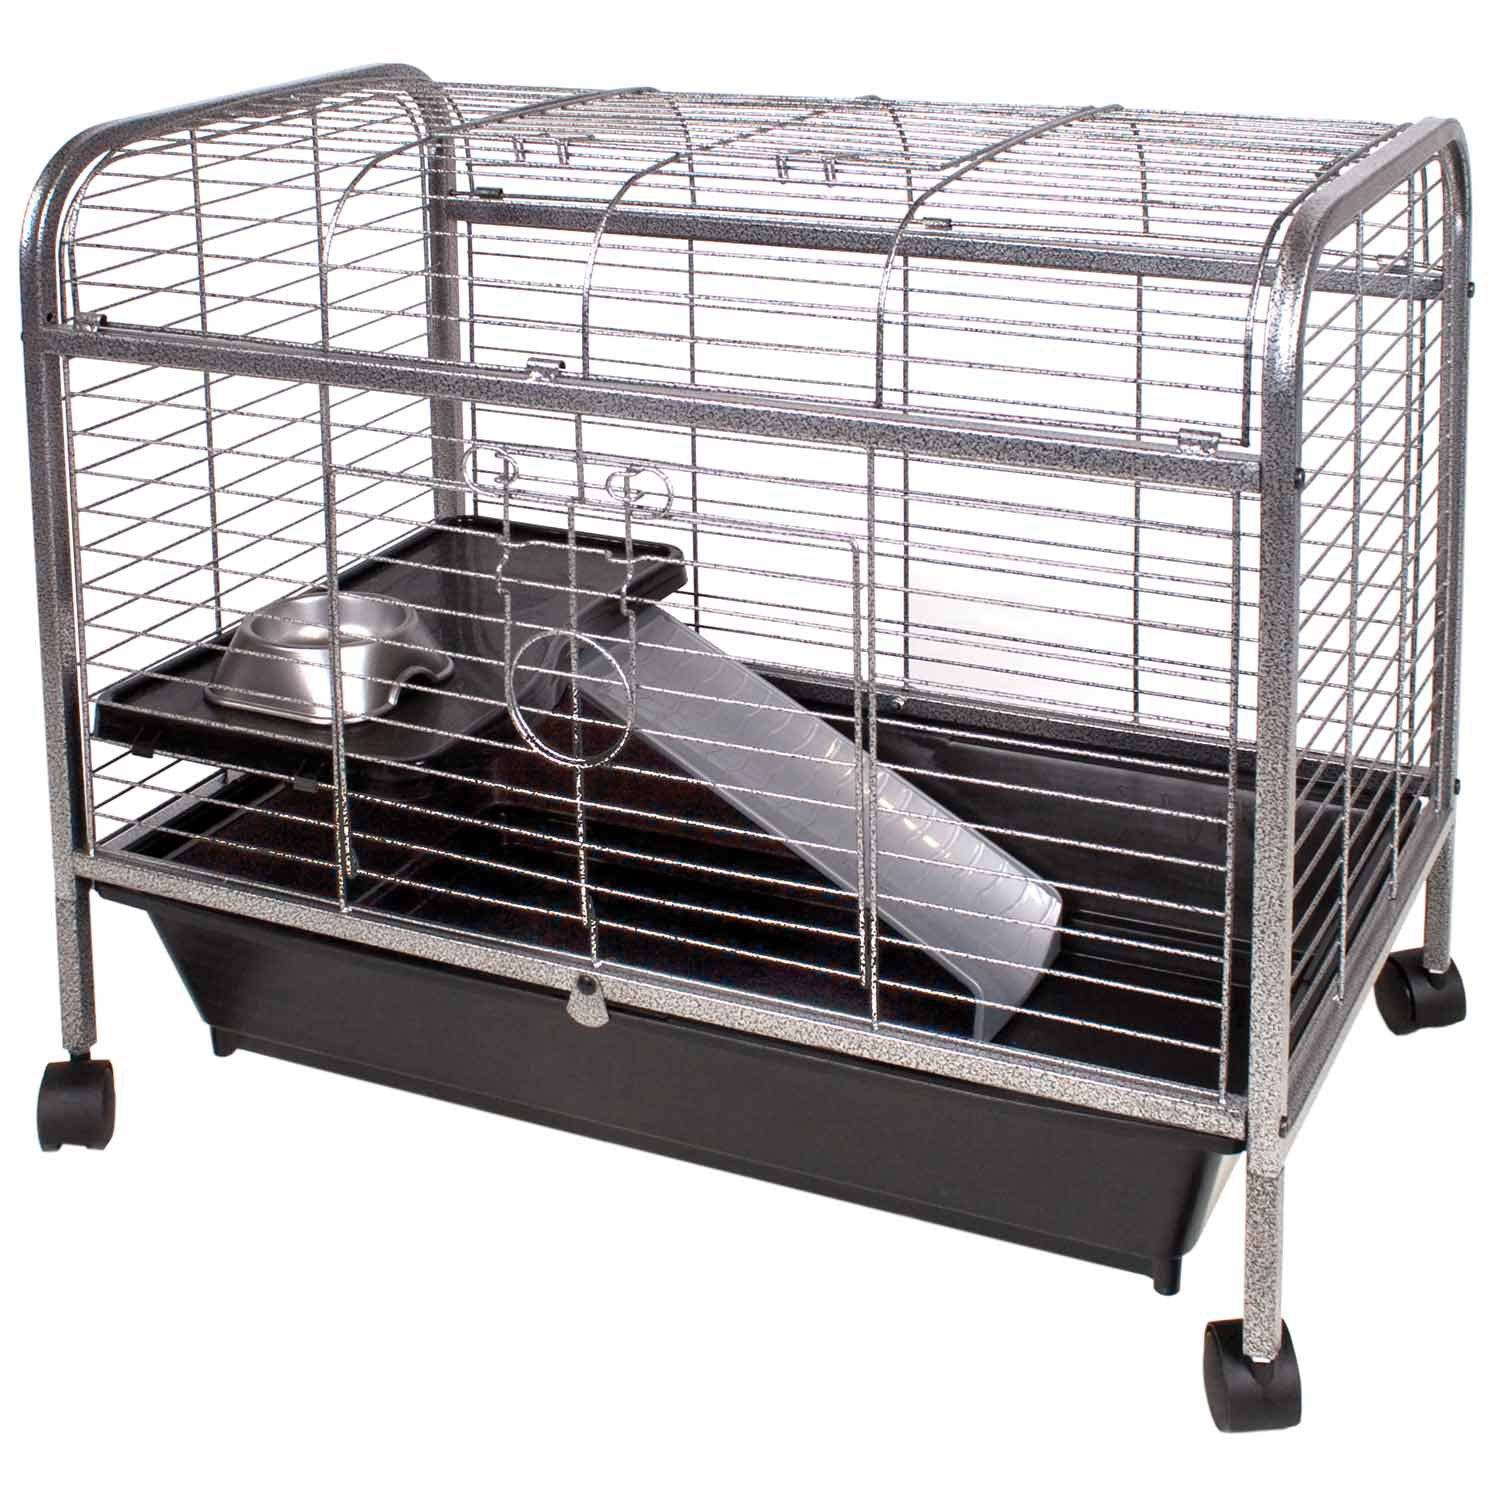 Ware living room guinea pig home petco for Small guinea pig cages for sale